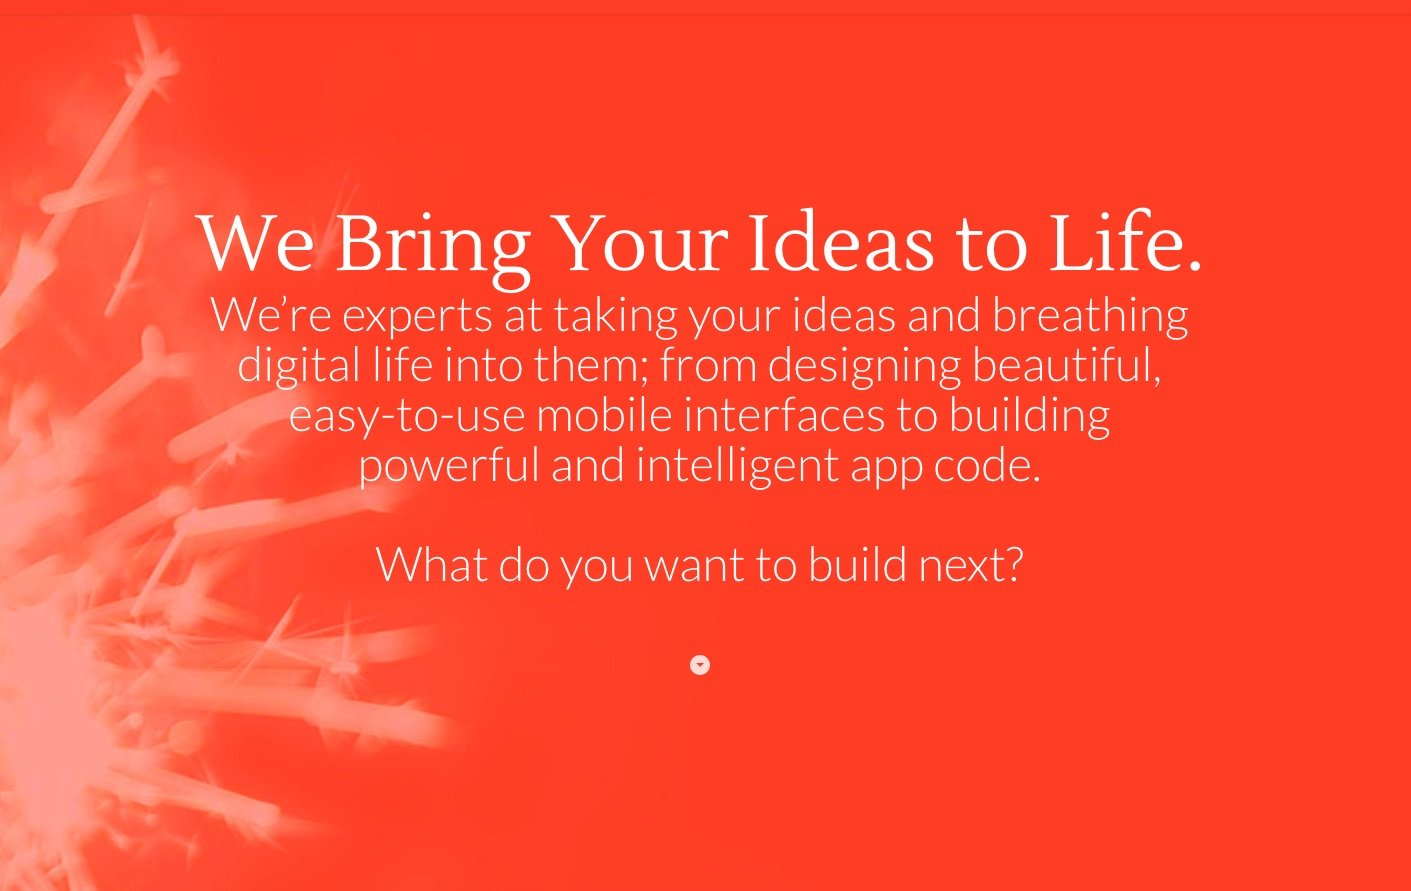 We Bring Your Ideas to Life